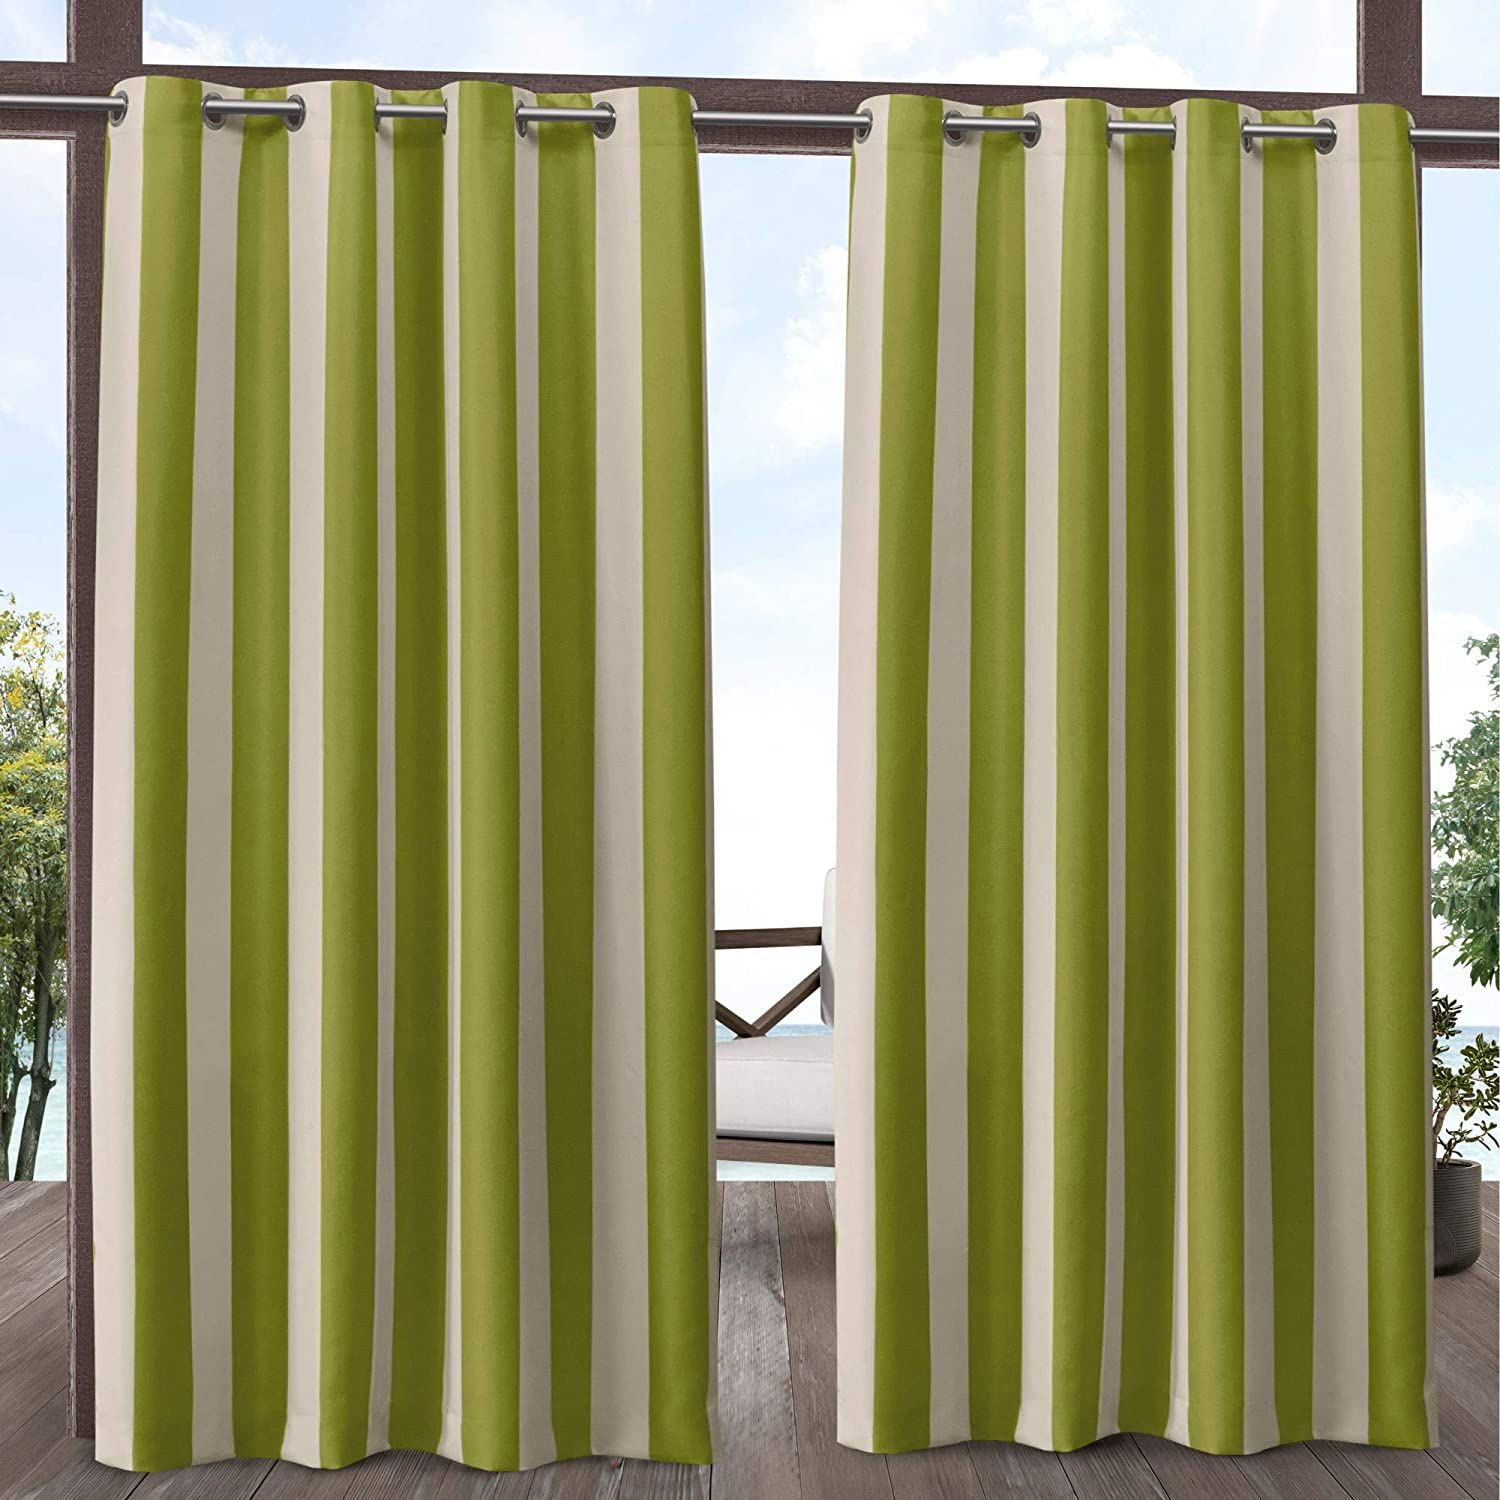 Exclusive Home Curtains Canopy Stripe Indoor/Outdoor Grommet Top Curtain Panel Pair, 54x84, Kiwi/Sand